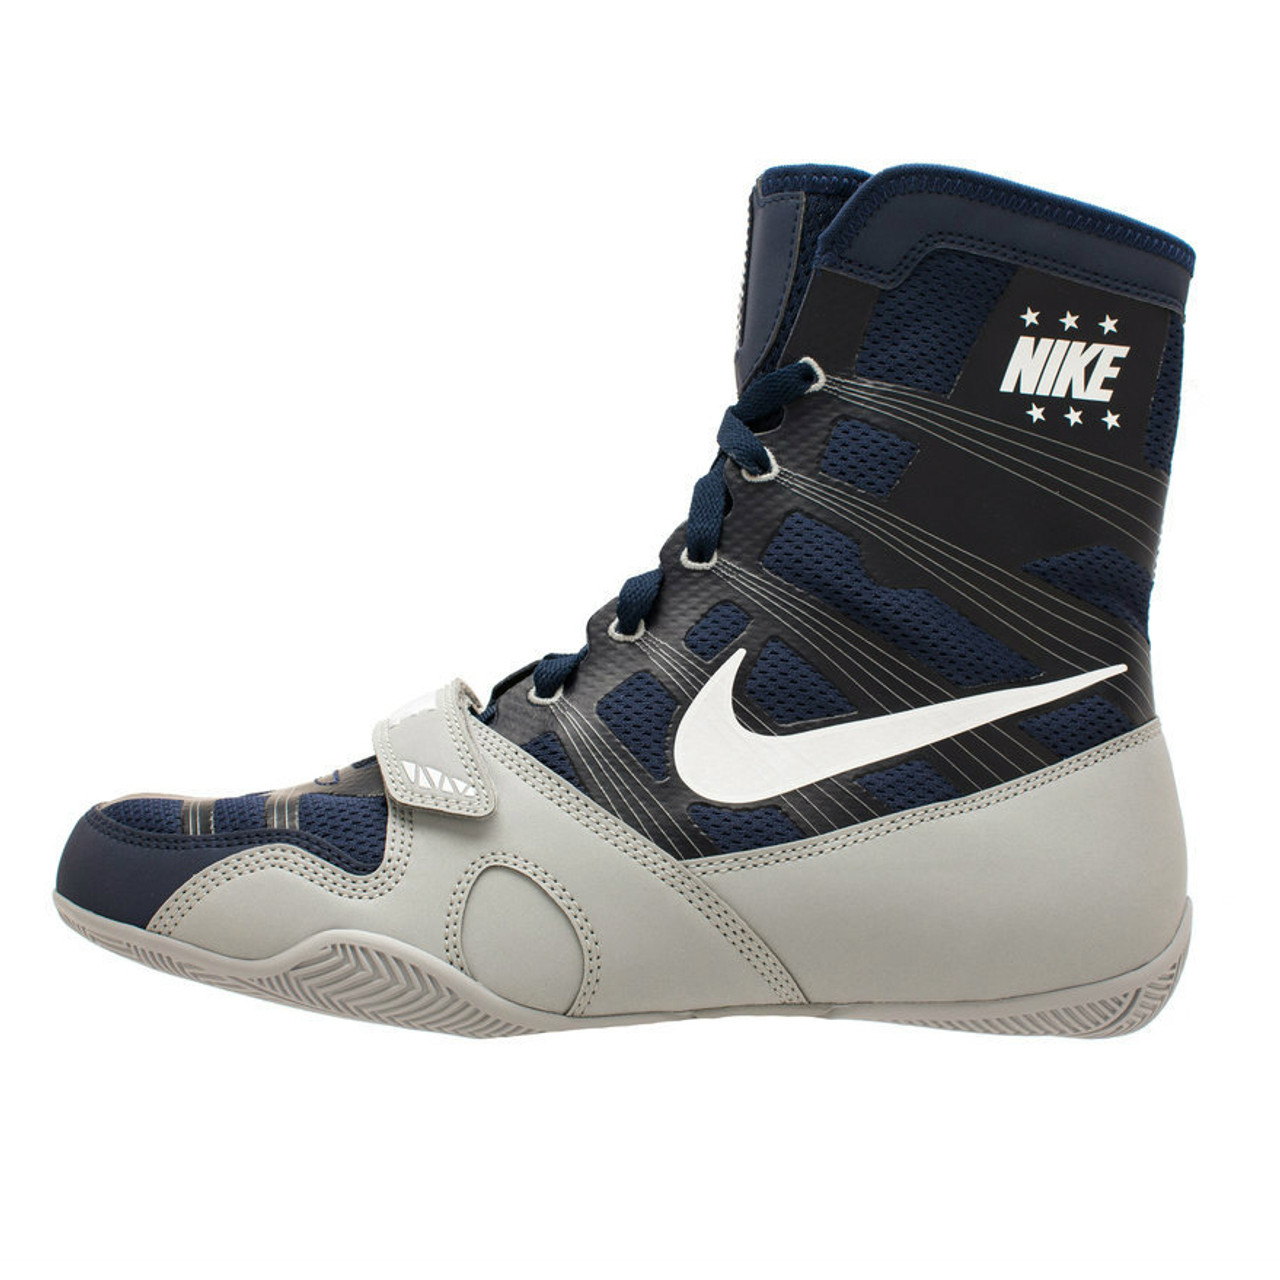 sports shoes 0c824 2d8ae Nike Hyper KO Limited Edition Boxing Boots Navy Silver ...